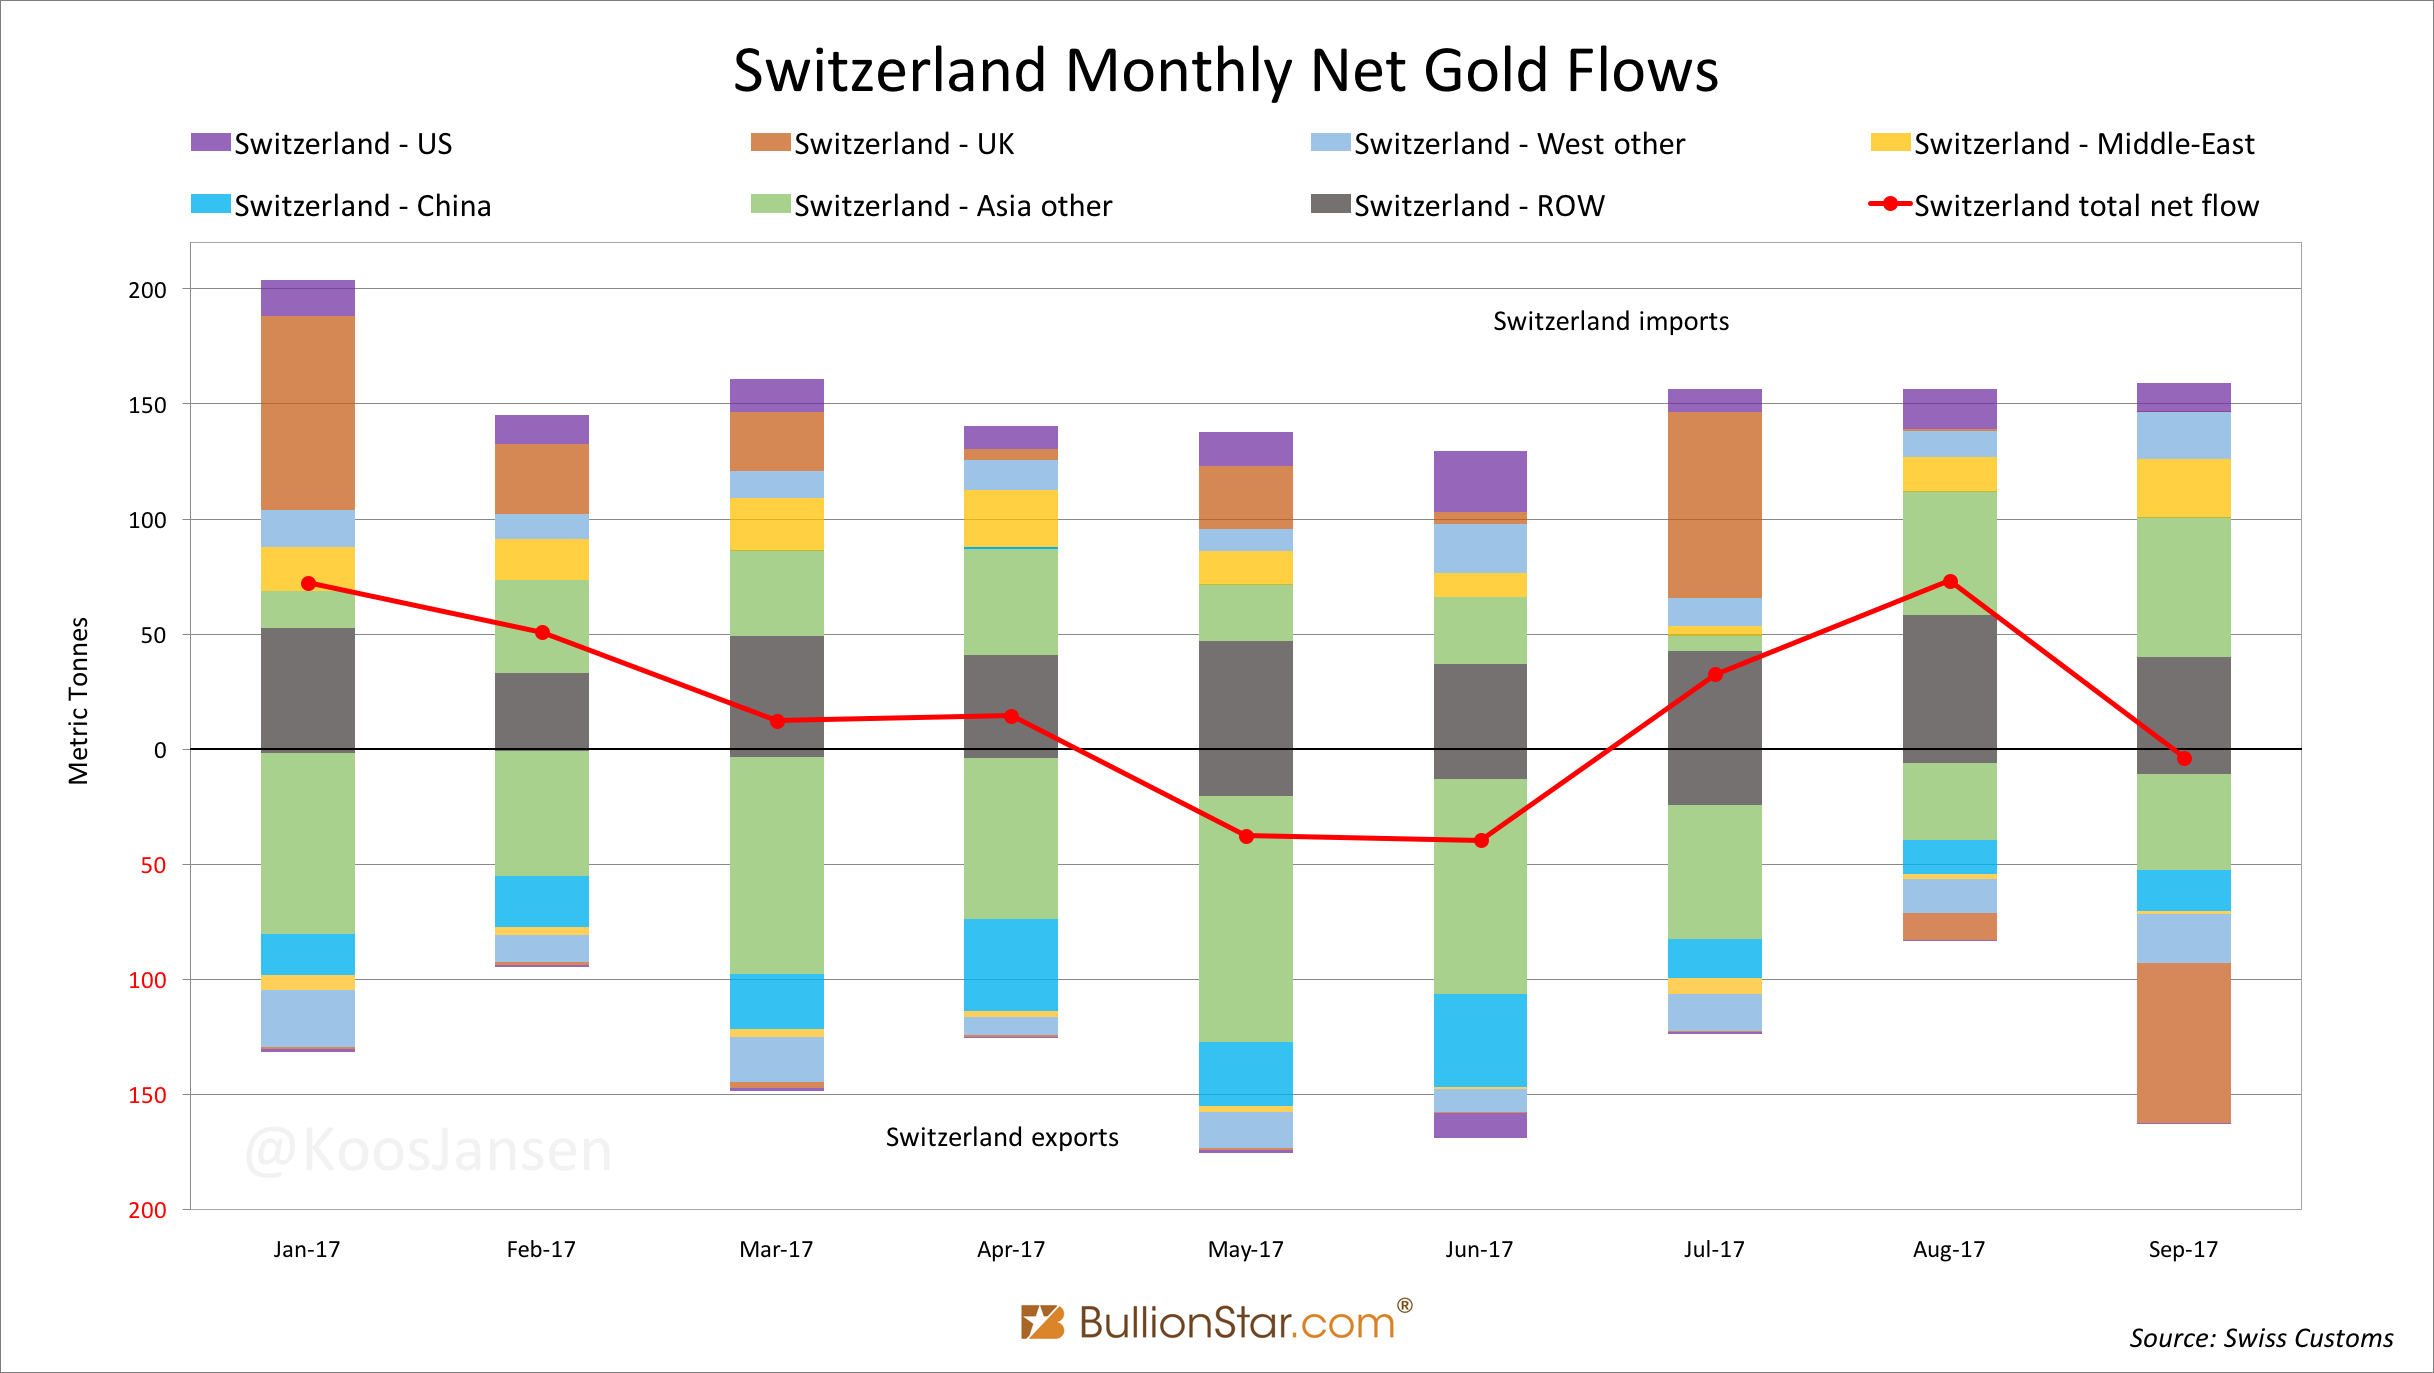 Switzerland Monthly Gold Flows, Jan 2017 - Sep 2017